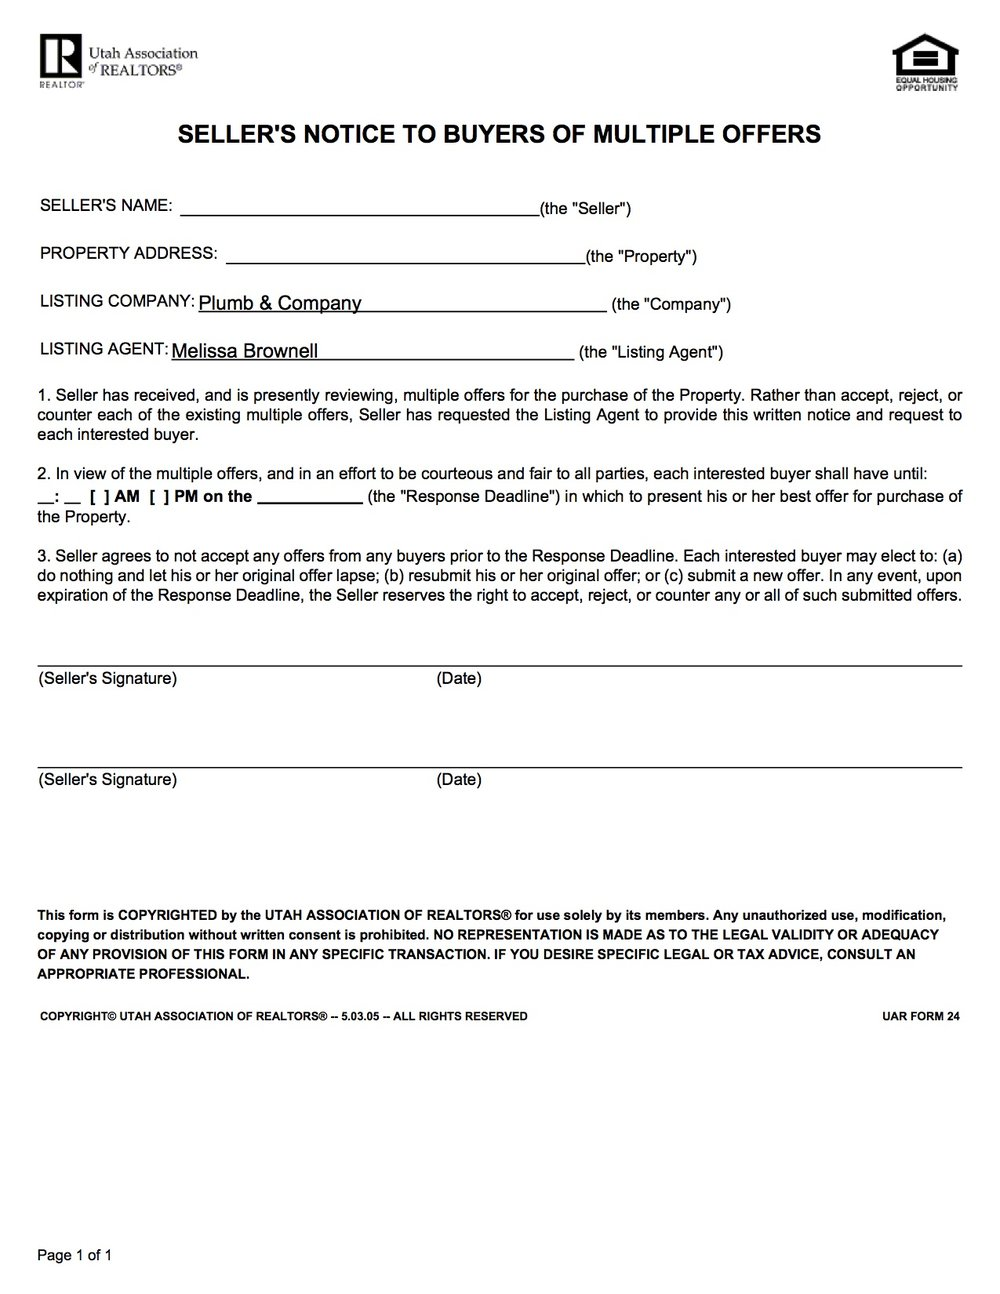 Seller's Notice to Buyers of Multiple Offers - Form provided by the Utah Association of Realtors